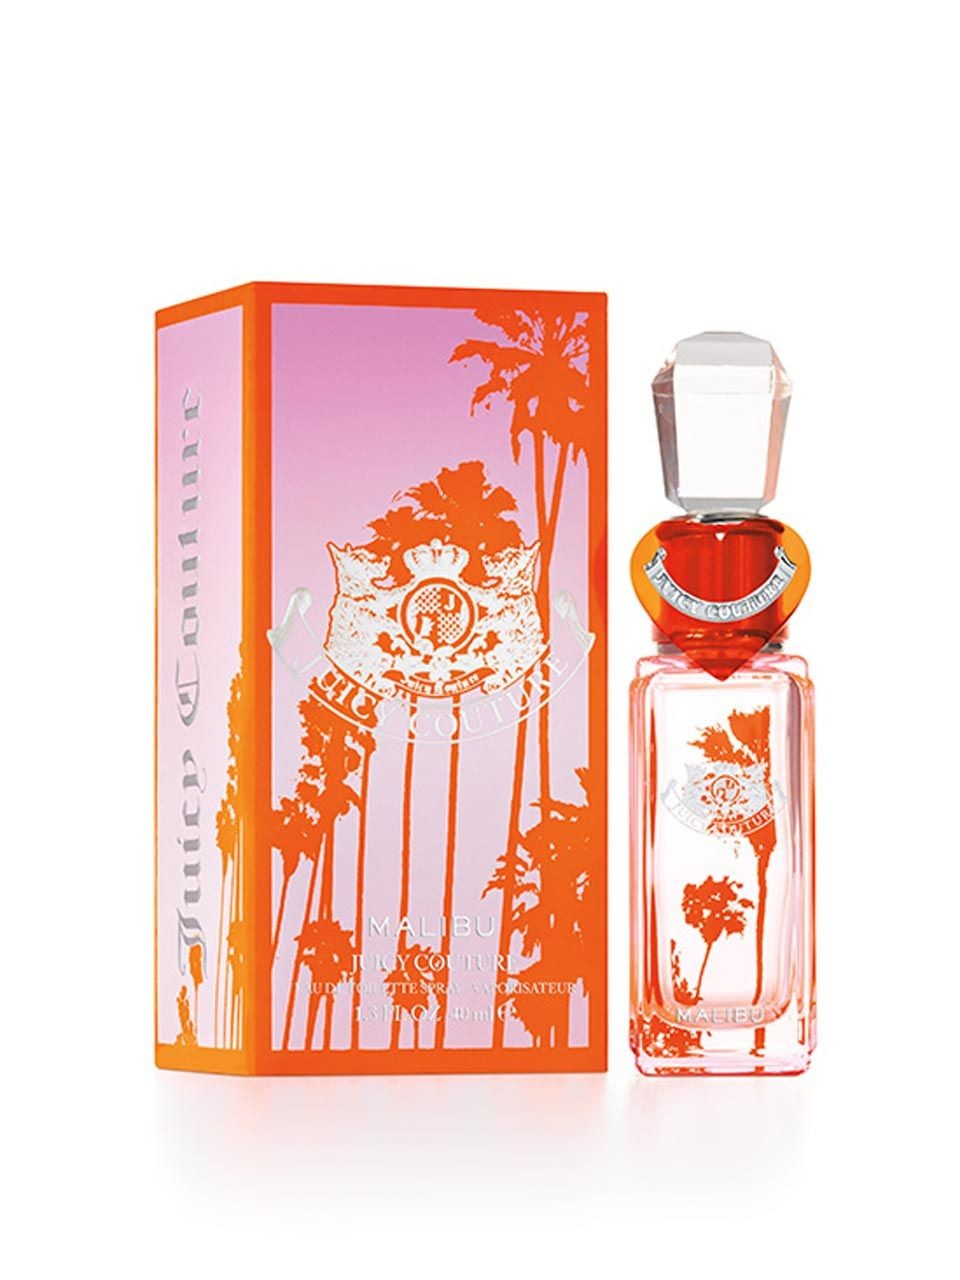 Juicy Couture Malibu Juicy Couture perfume - a fragrance ...